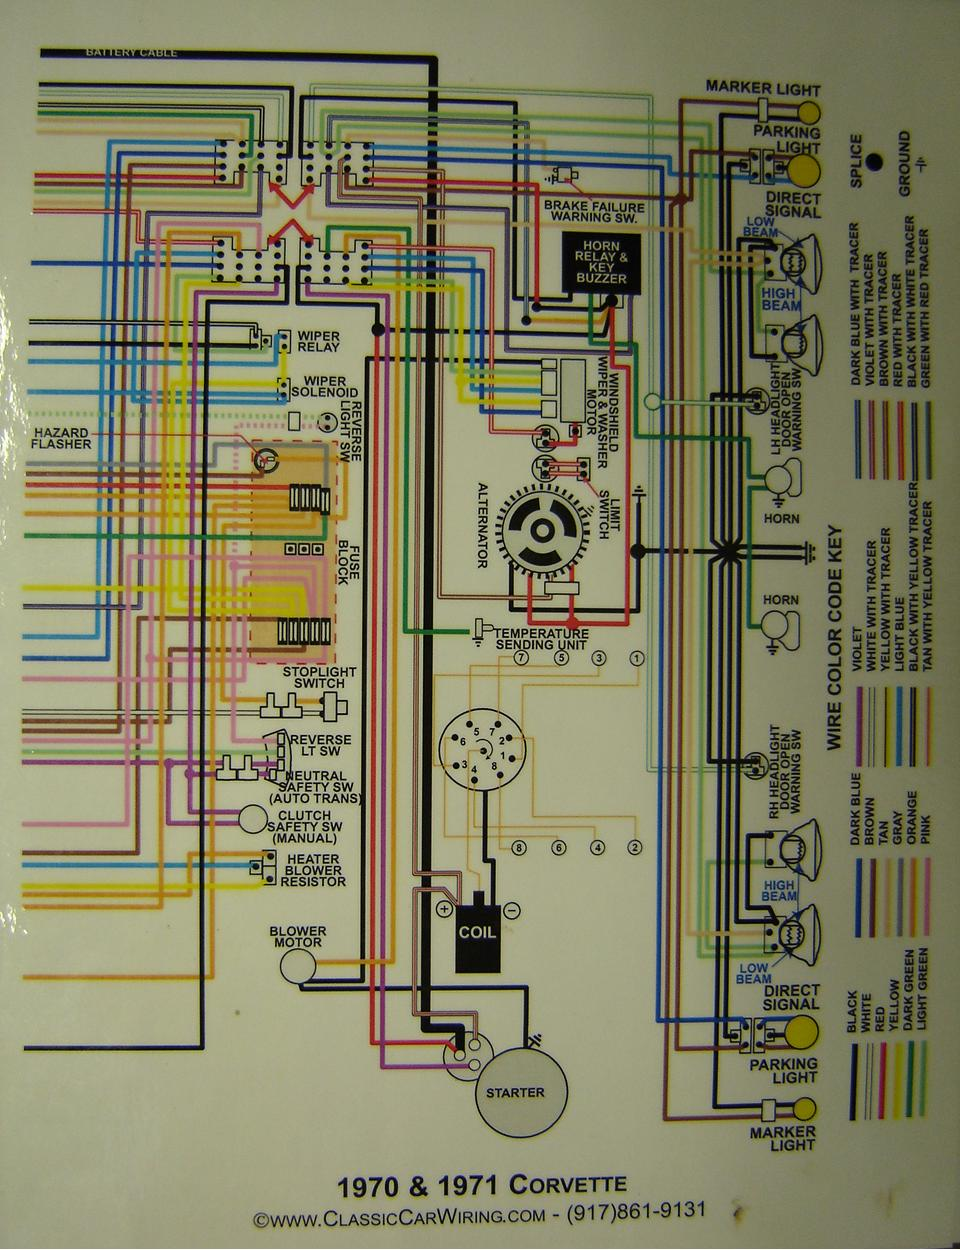 hight resolution of chevy diagrams 1978 corvette fuse panel diagram 1970 71 corvette color wiring diagram 2 drawing b